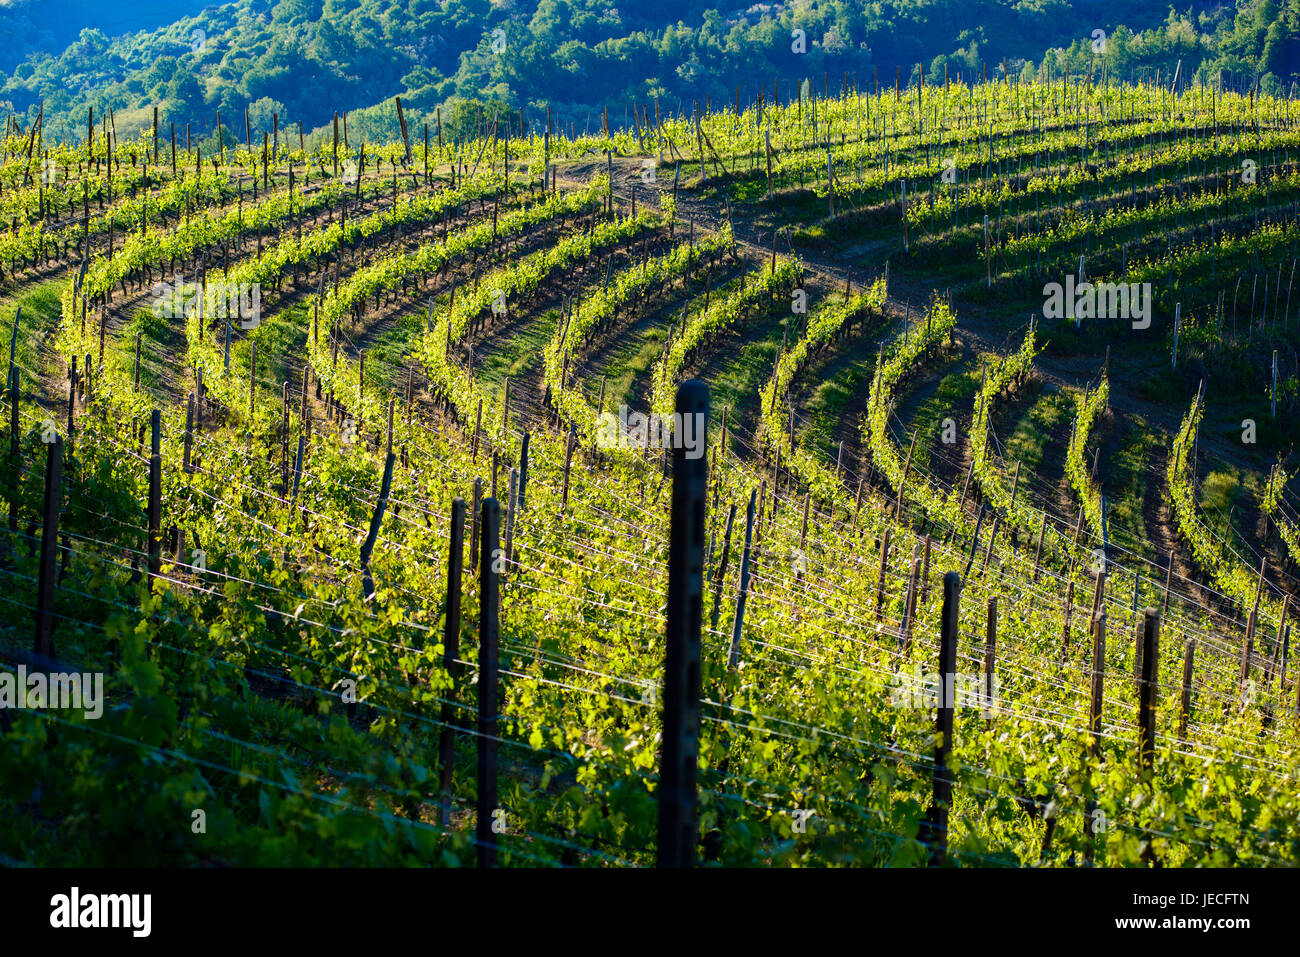 View of vineyards and woods in the morning light - Stock Image